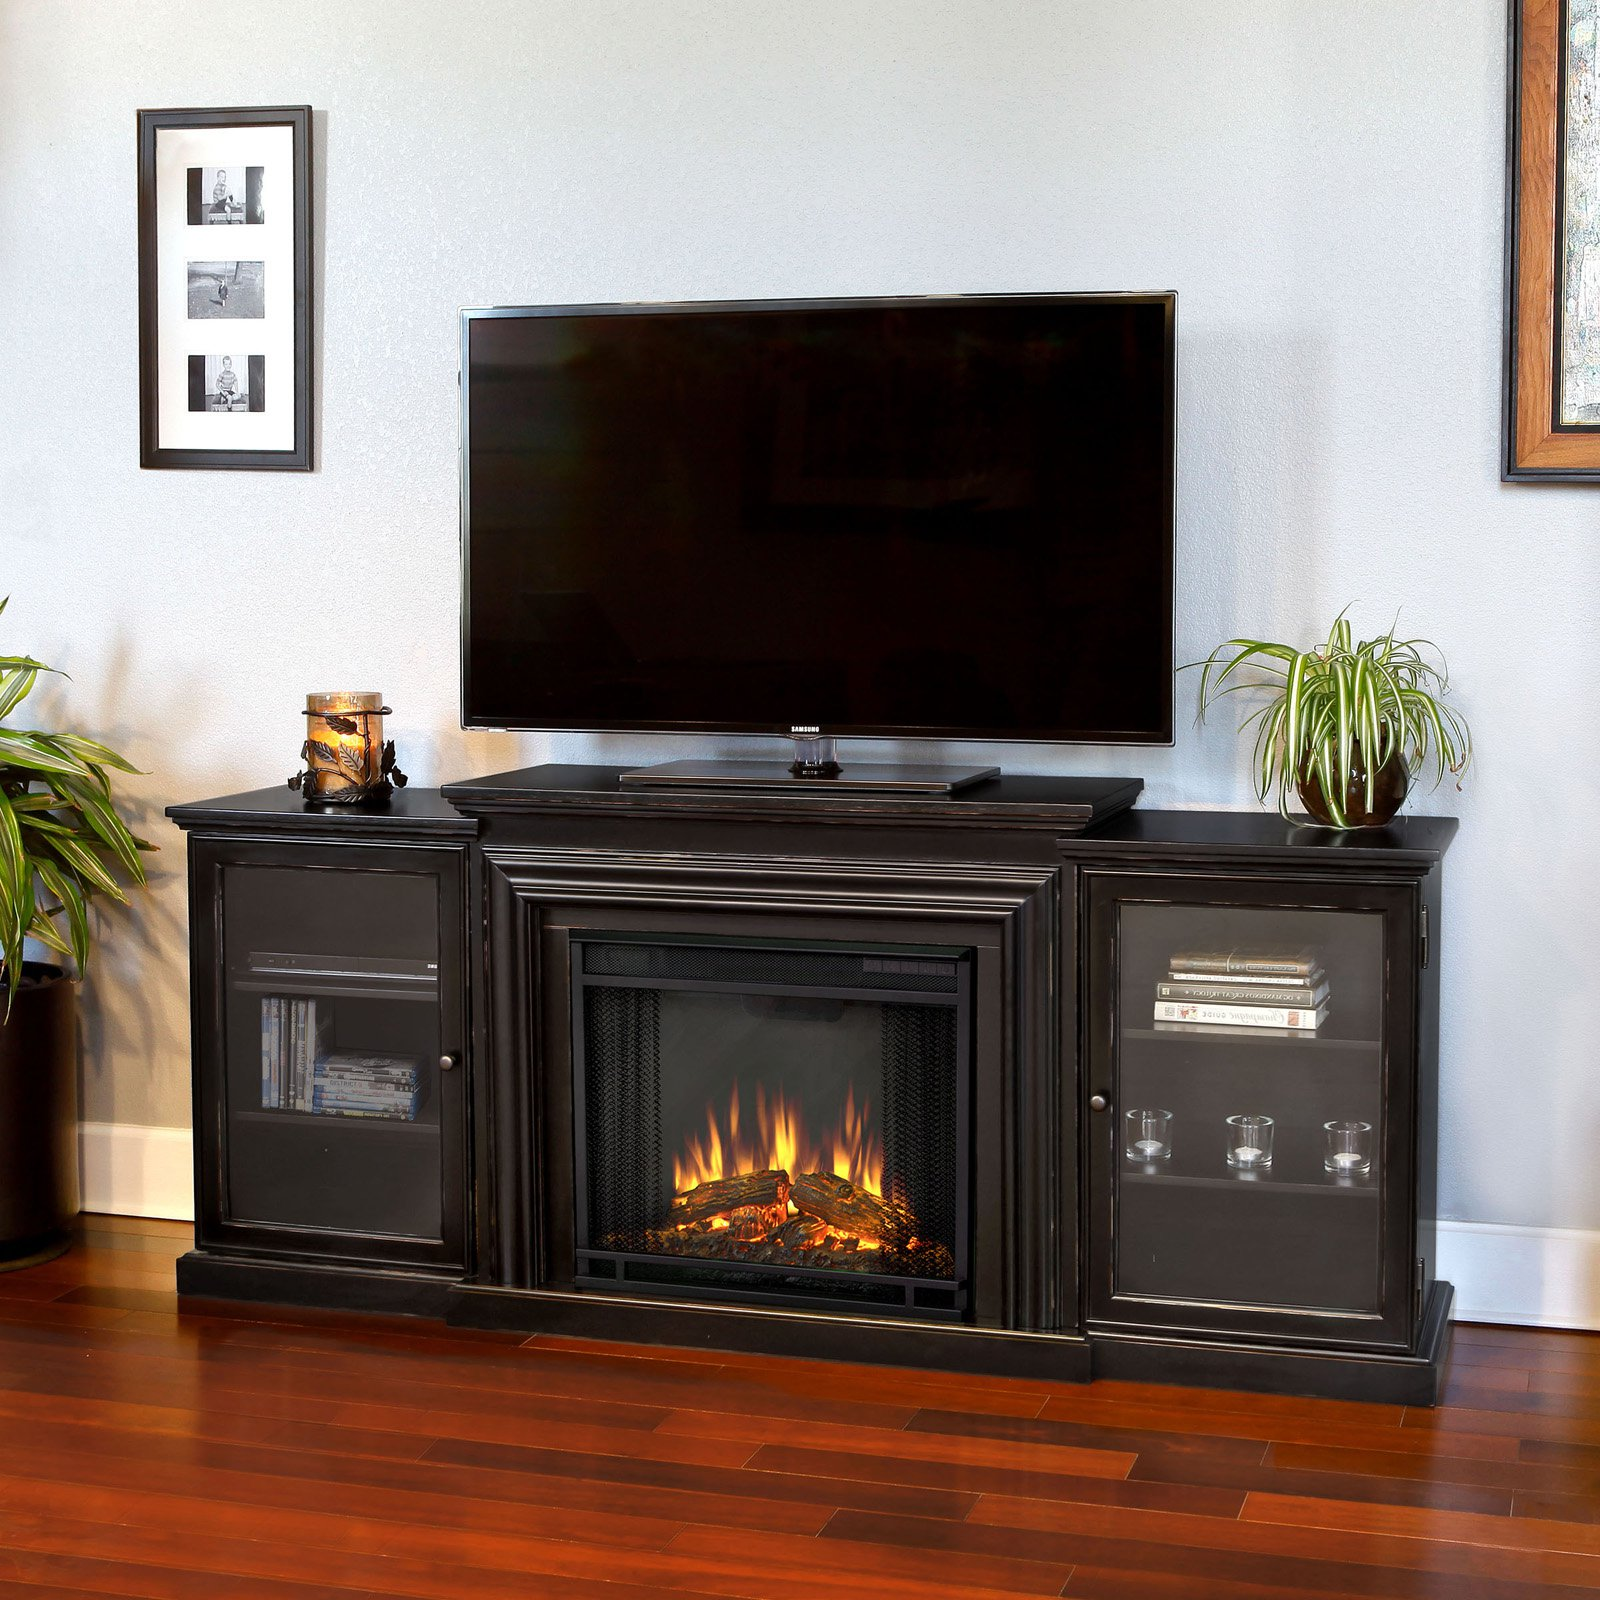 Free Shipping. Buy Real Flame Frederick Entertainment Center Electric Fireplace - Blackwash at Walmart.com